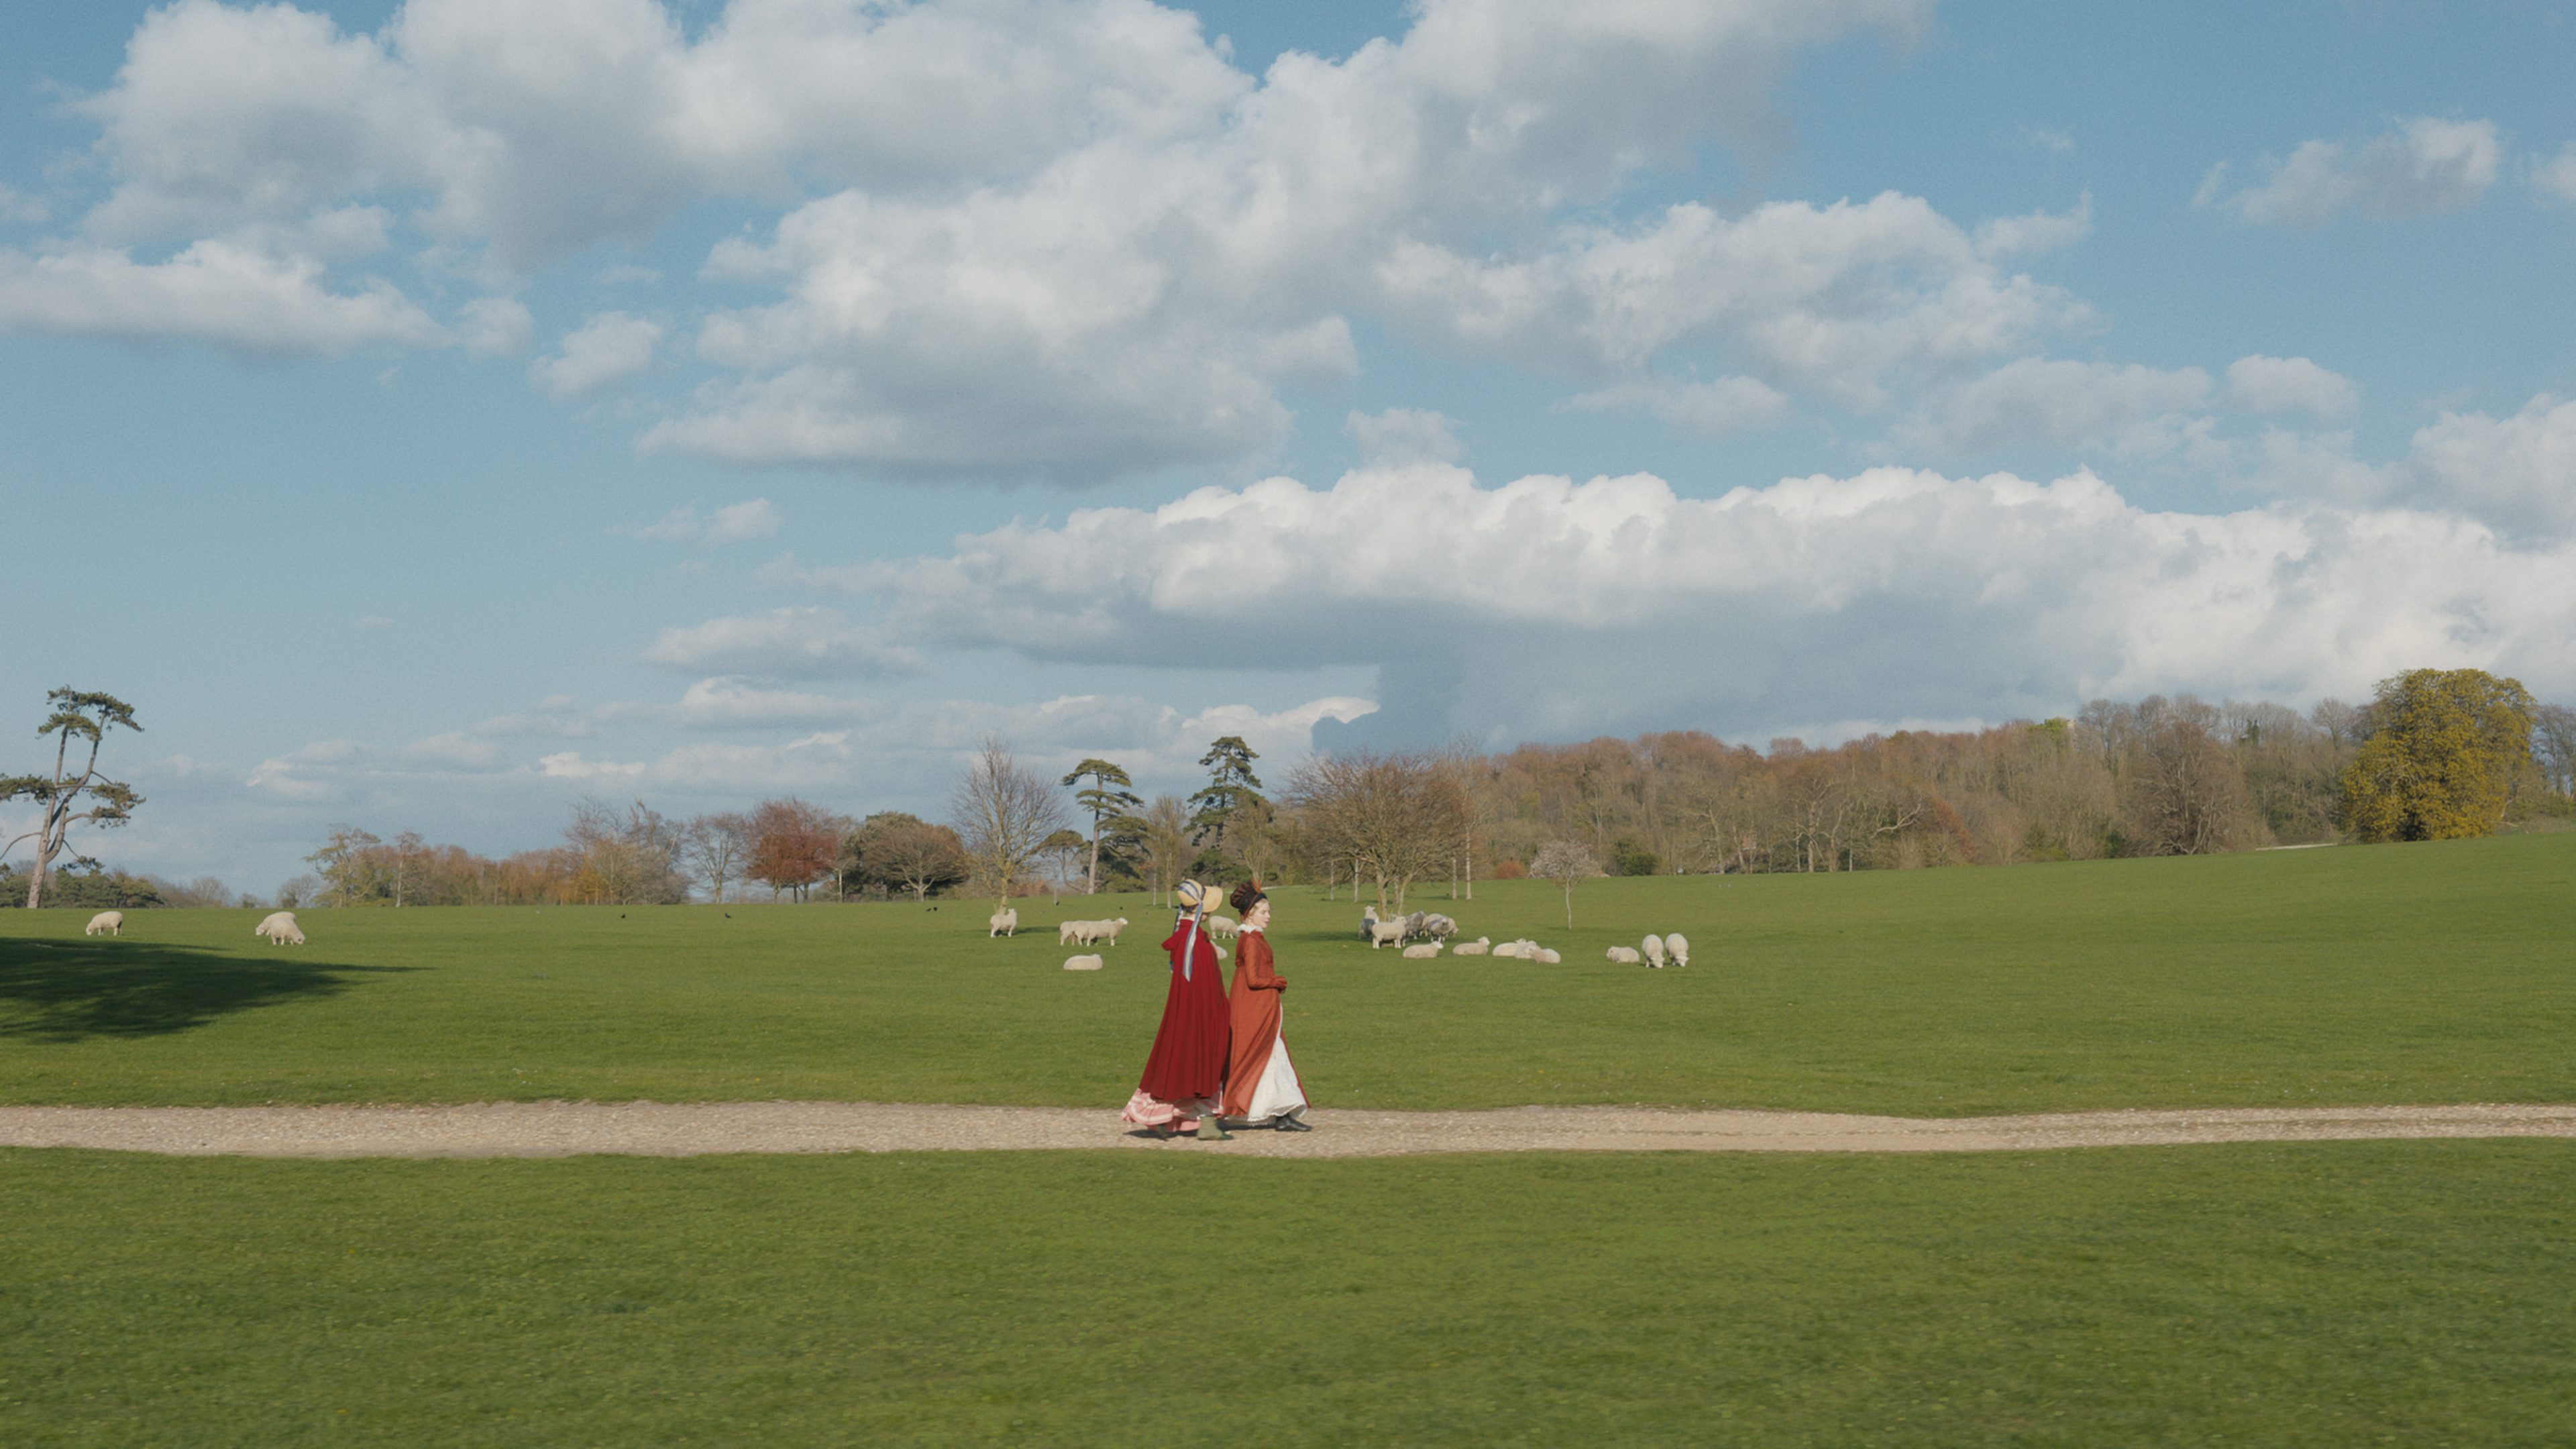 Mia Goth and Anya Taylor-Smith amidst the lambs in Emma